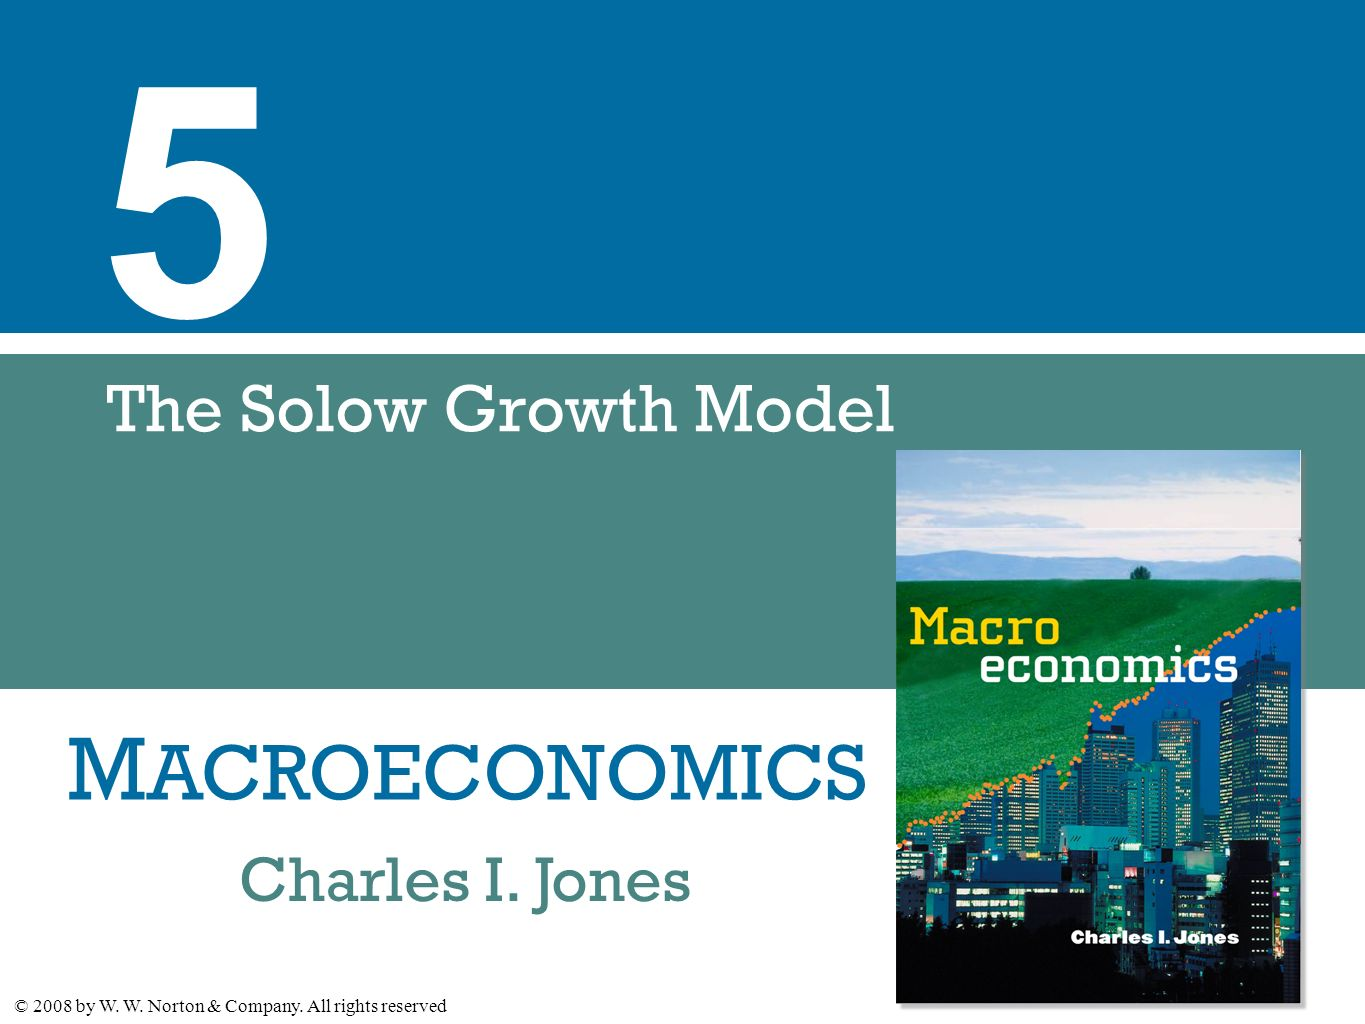 5 The Solow Growth Model